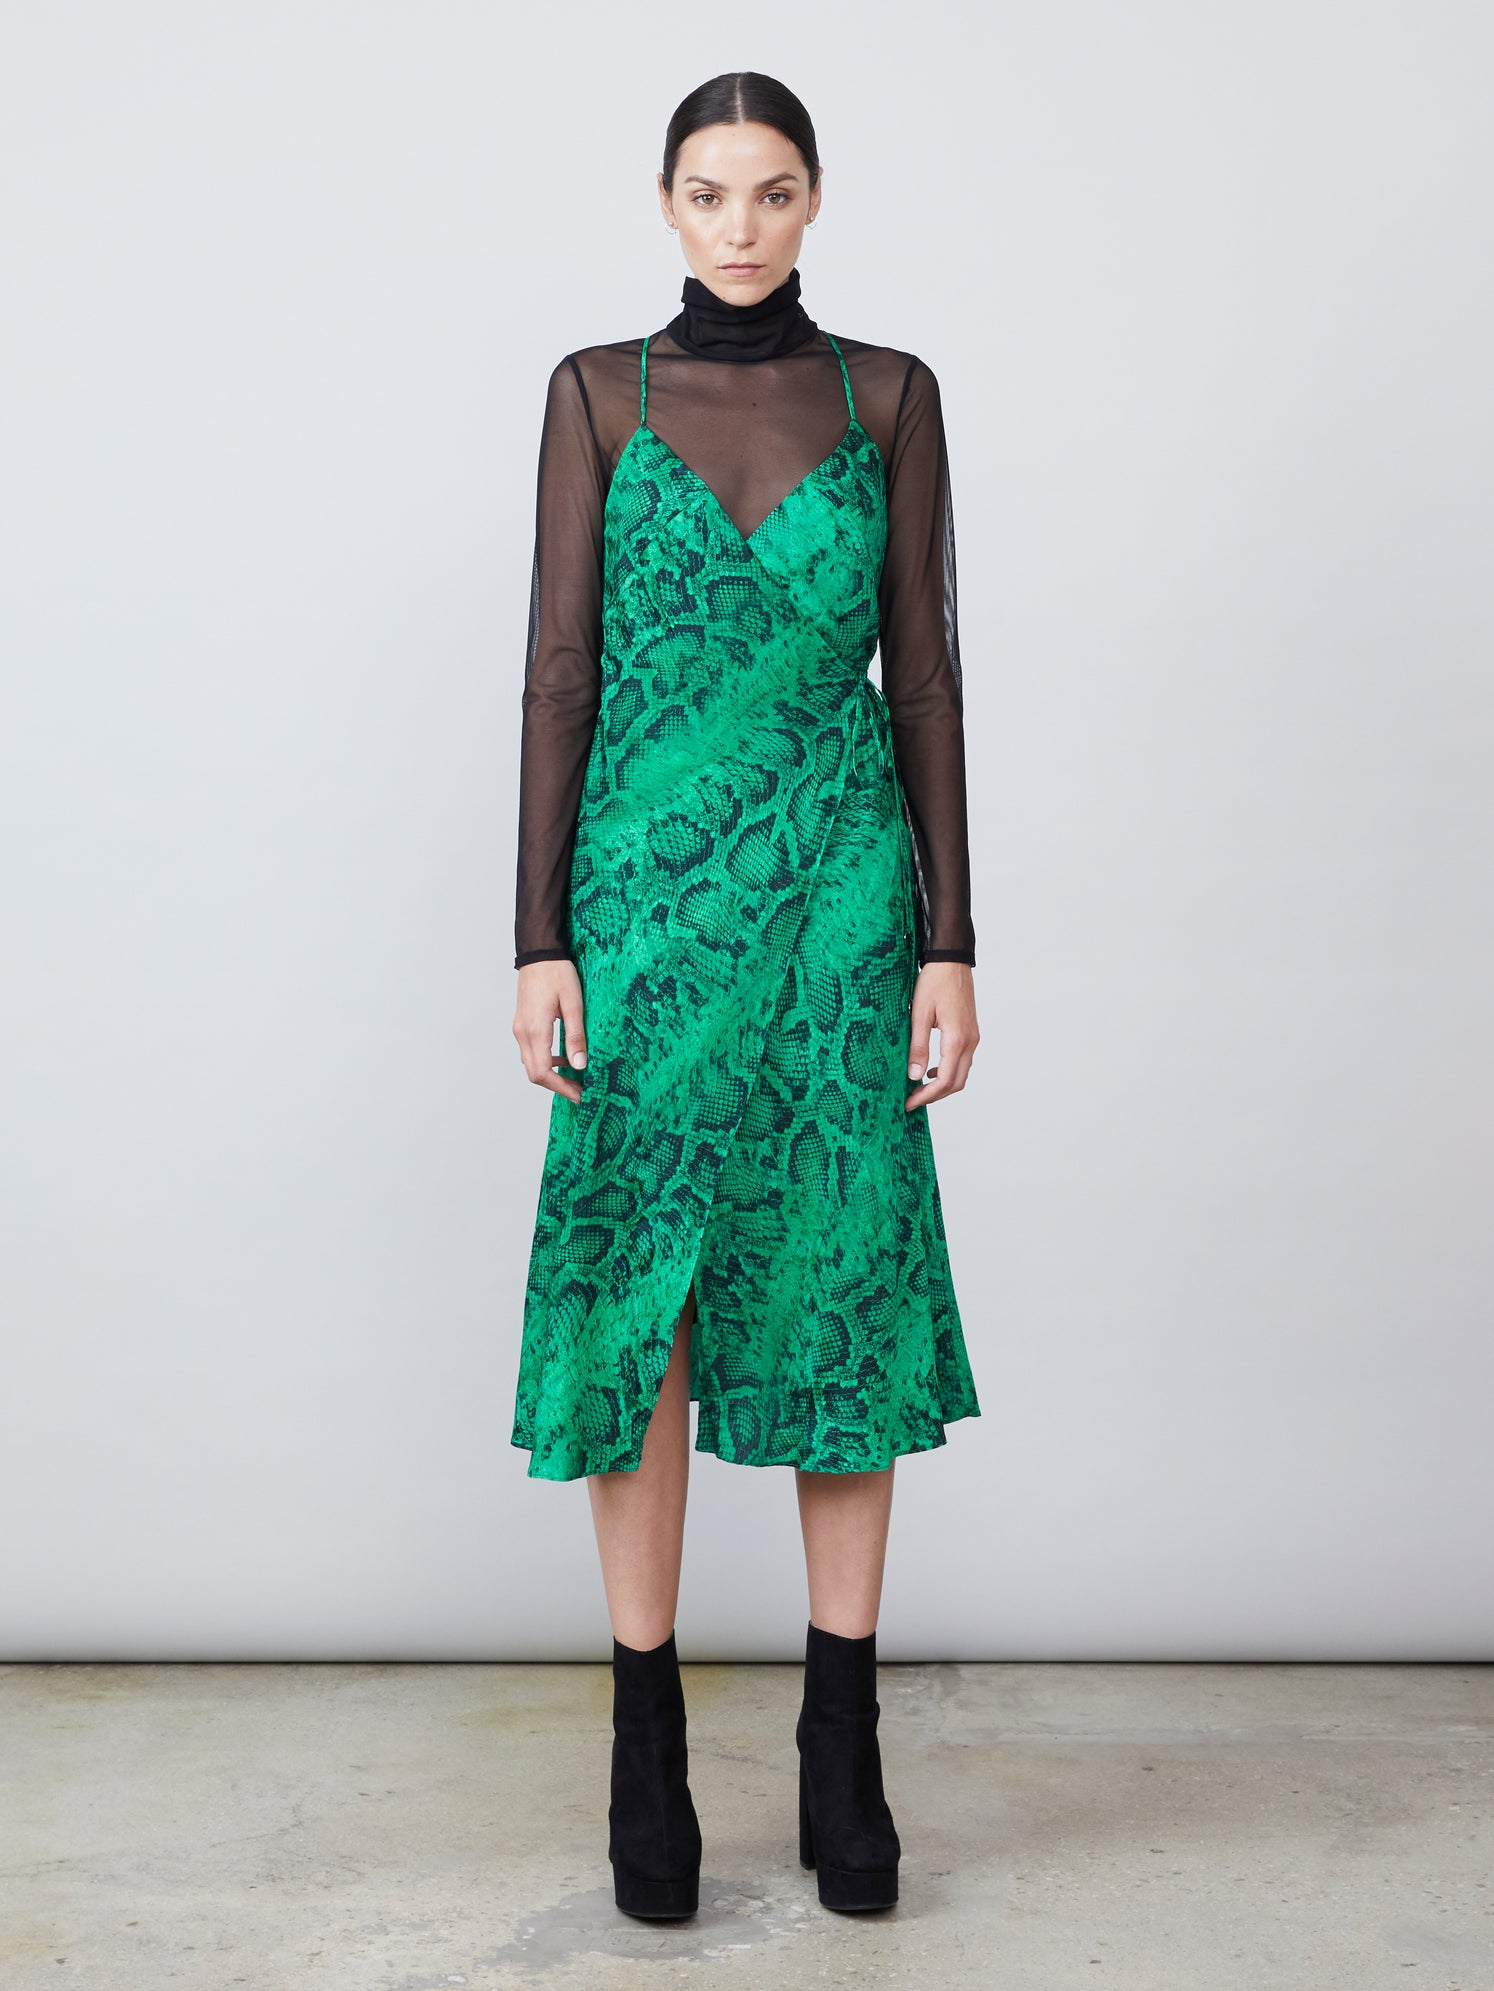 Jacquard snake print v neck dress with sheer turtleneck